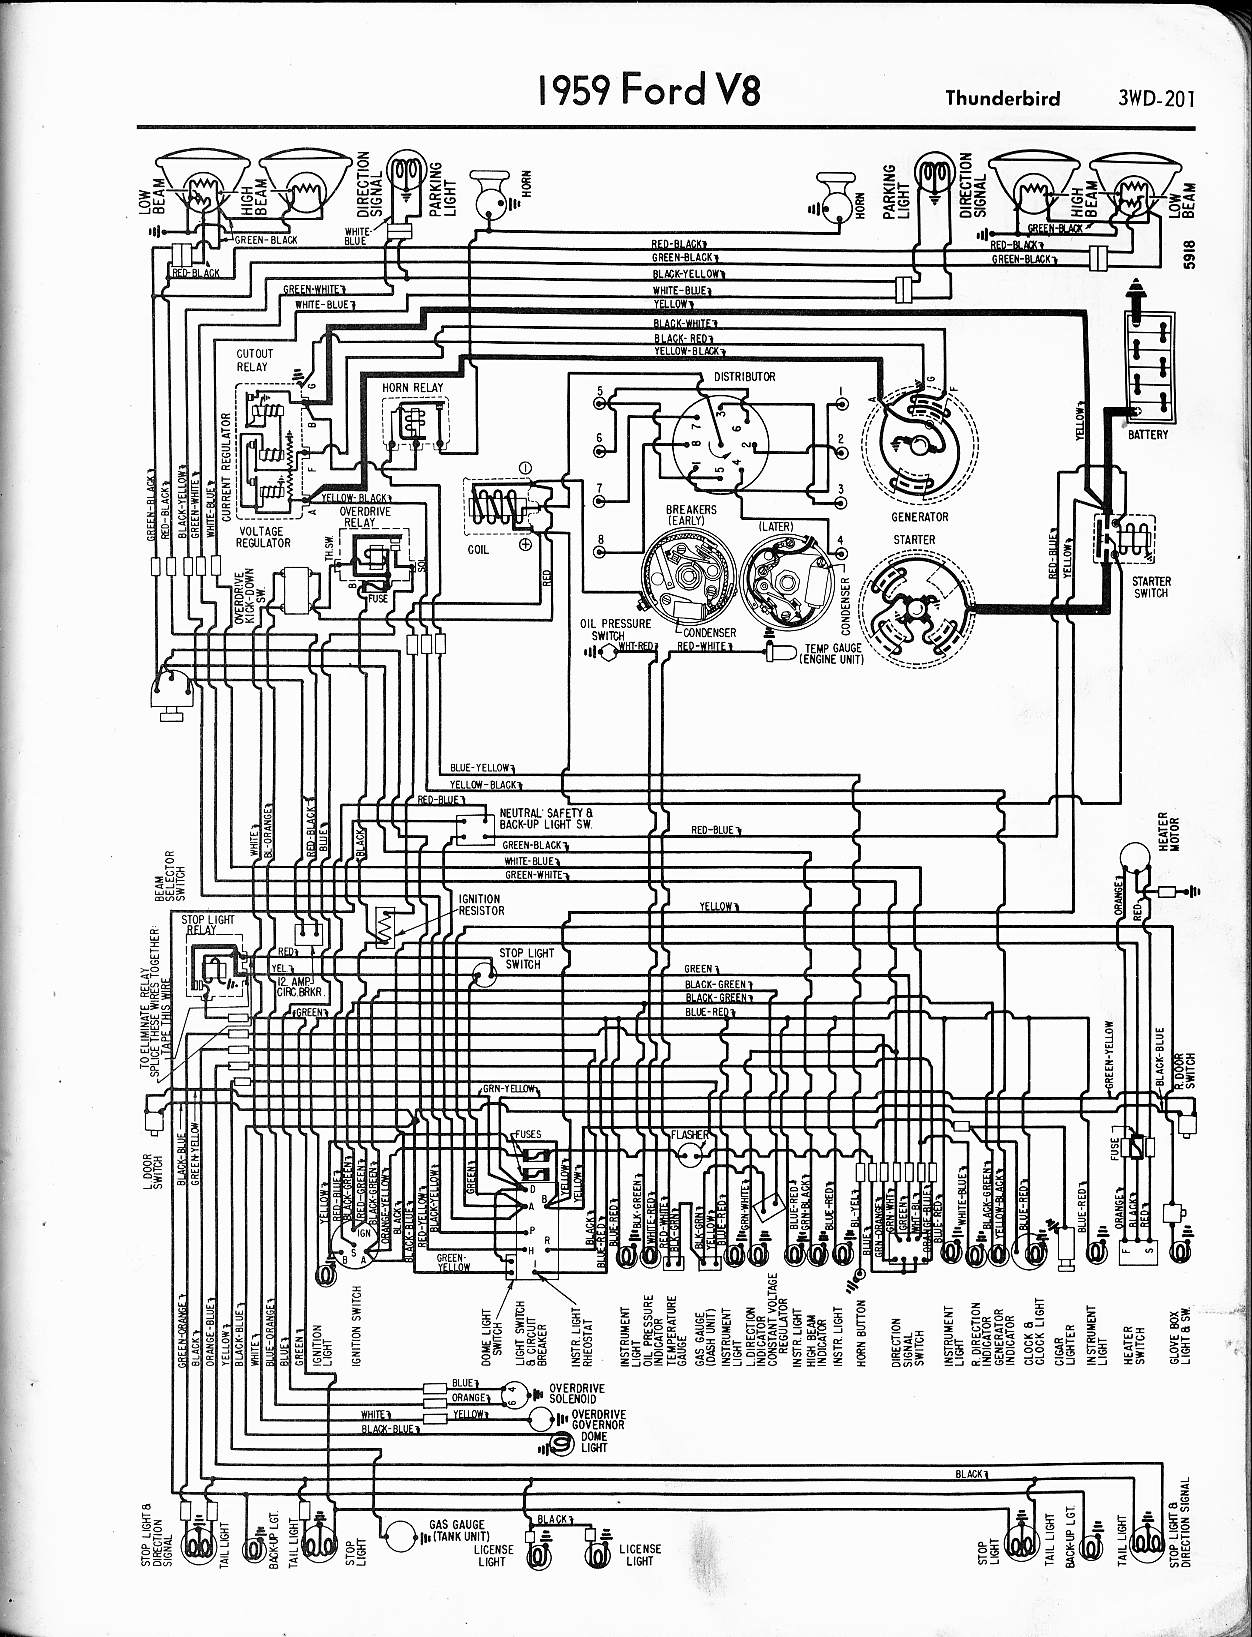 1958 Corvette Gauge Wiring Diagram Circuit Symbols 1964 57 65 Ford Diagrams Rh Oldcarmanualproject Com 1981